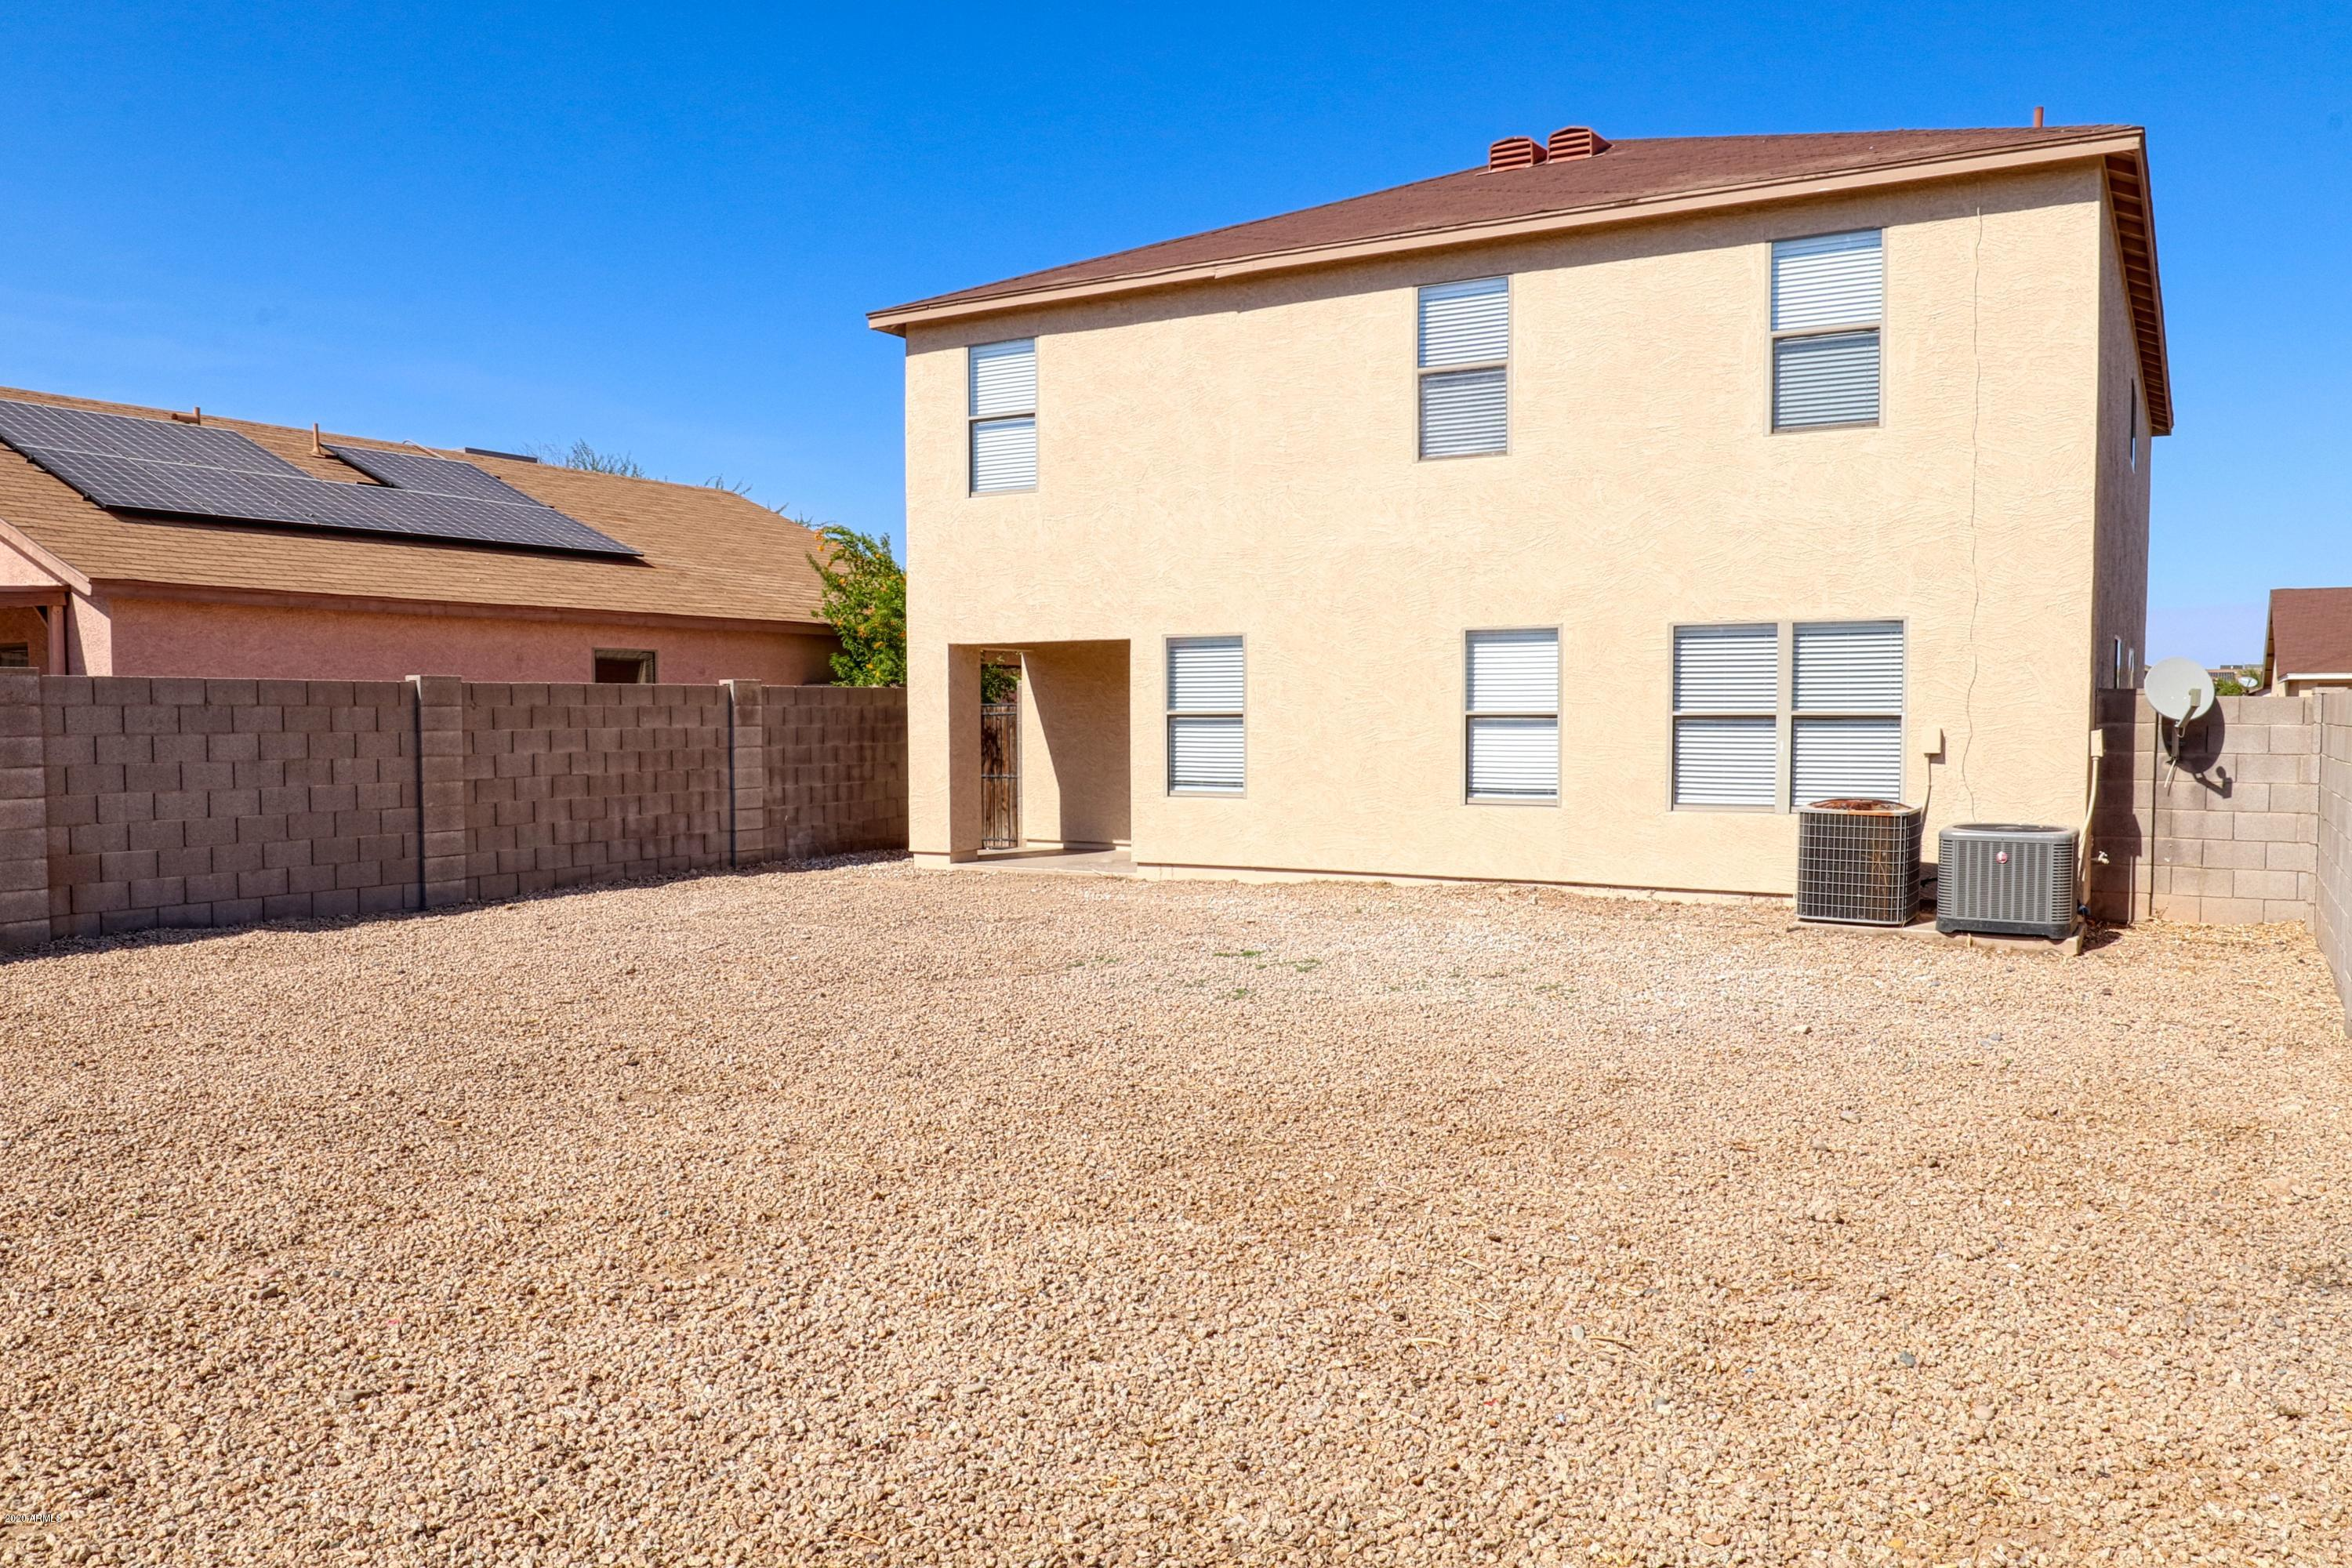 MLS 6136166 11525 W COLUMBINE Drive, El Mirage, AZ 85335 El Mirage AZ Luxury